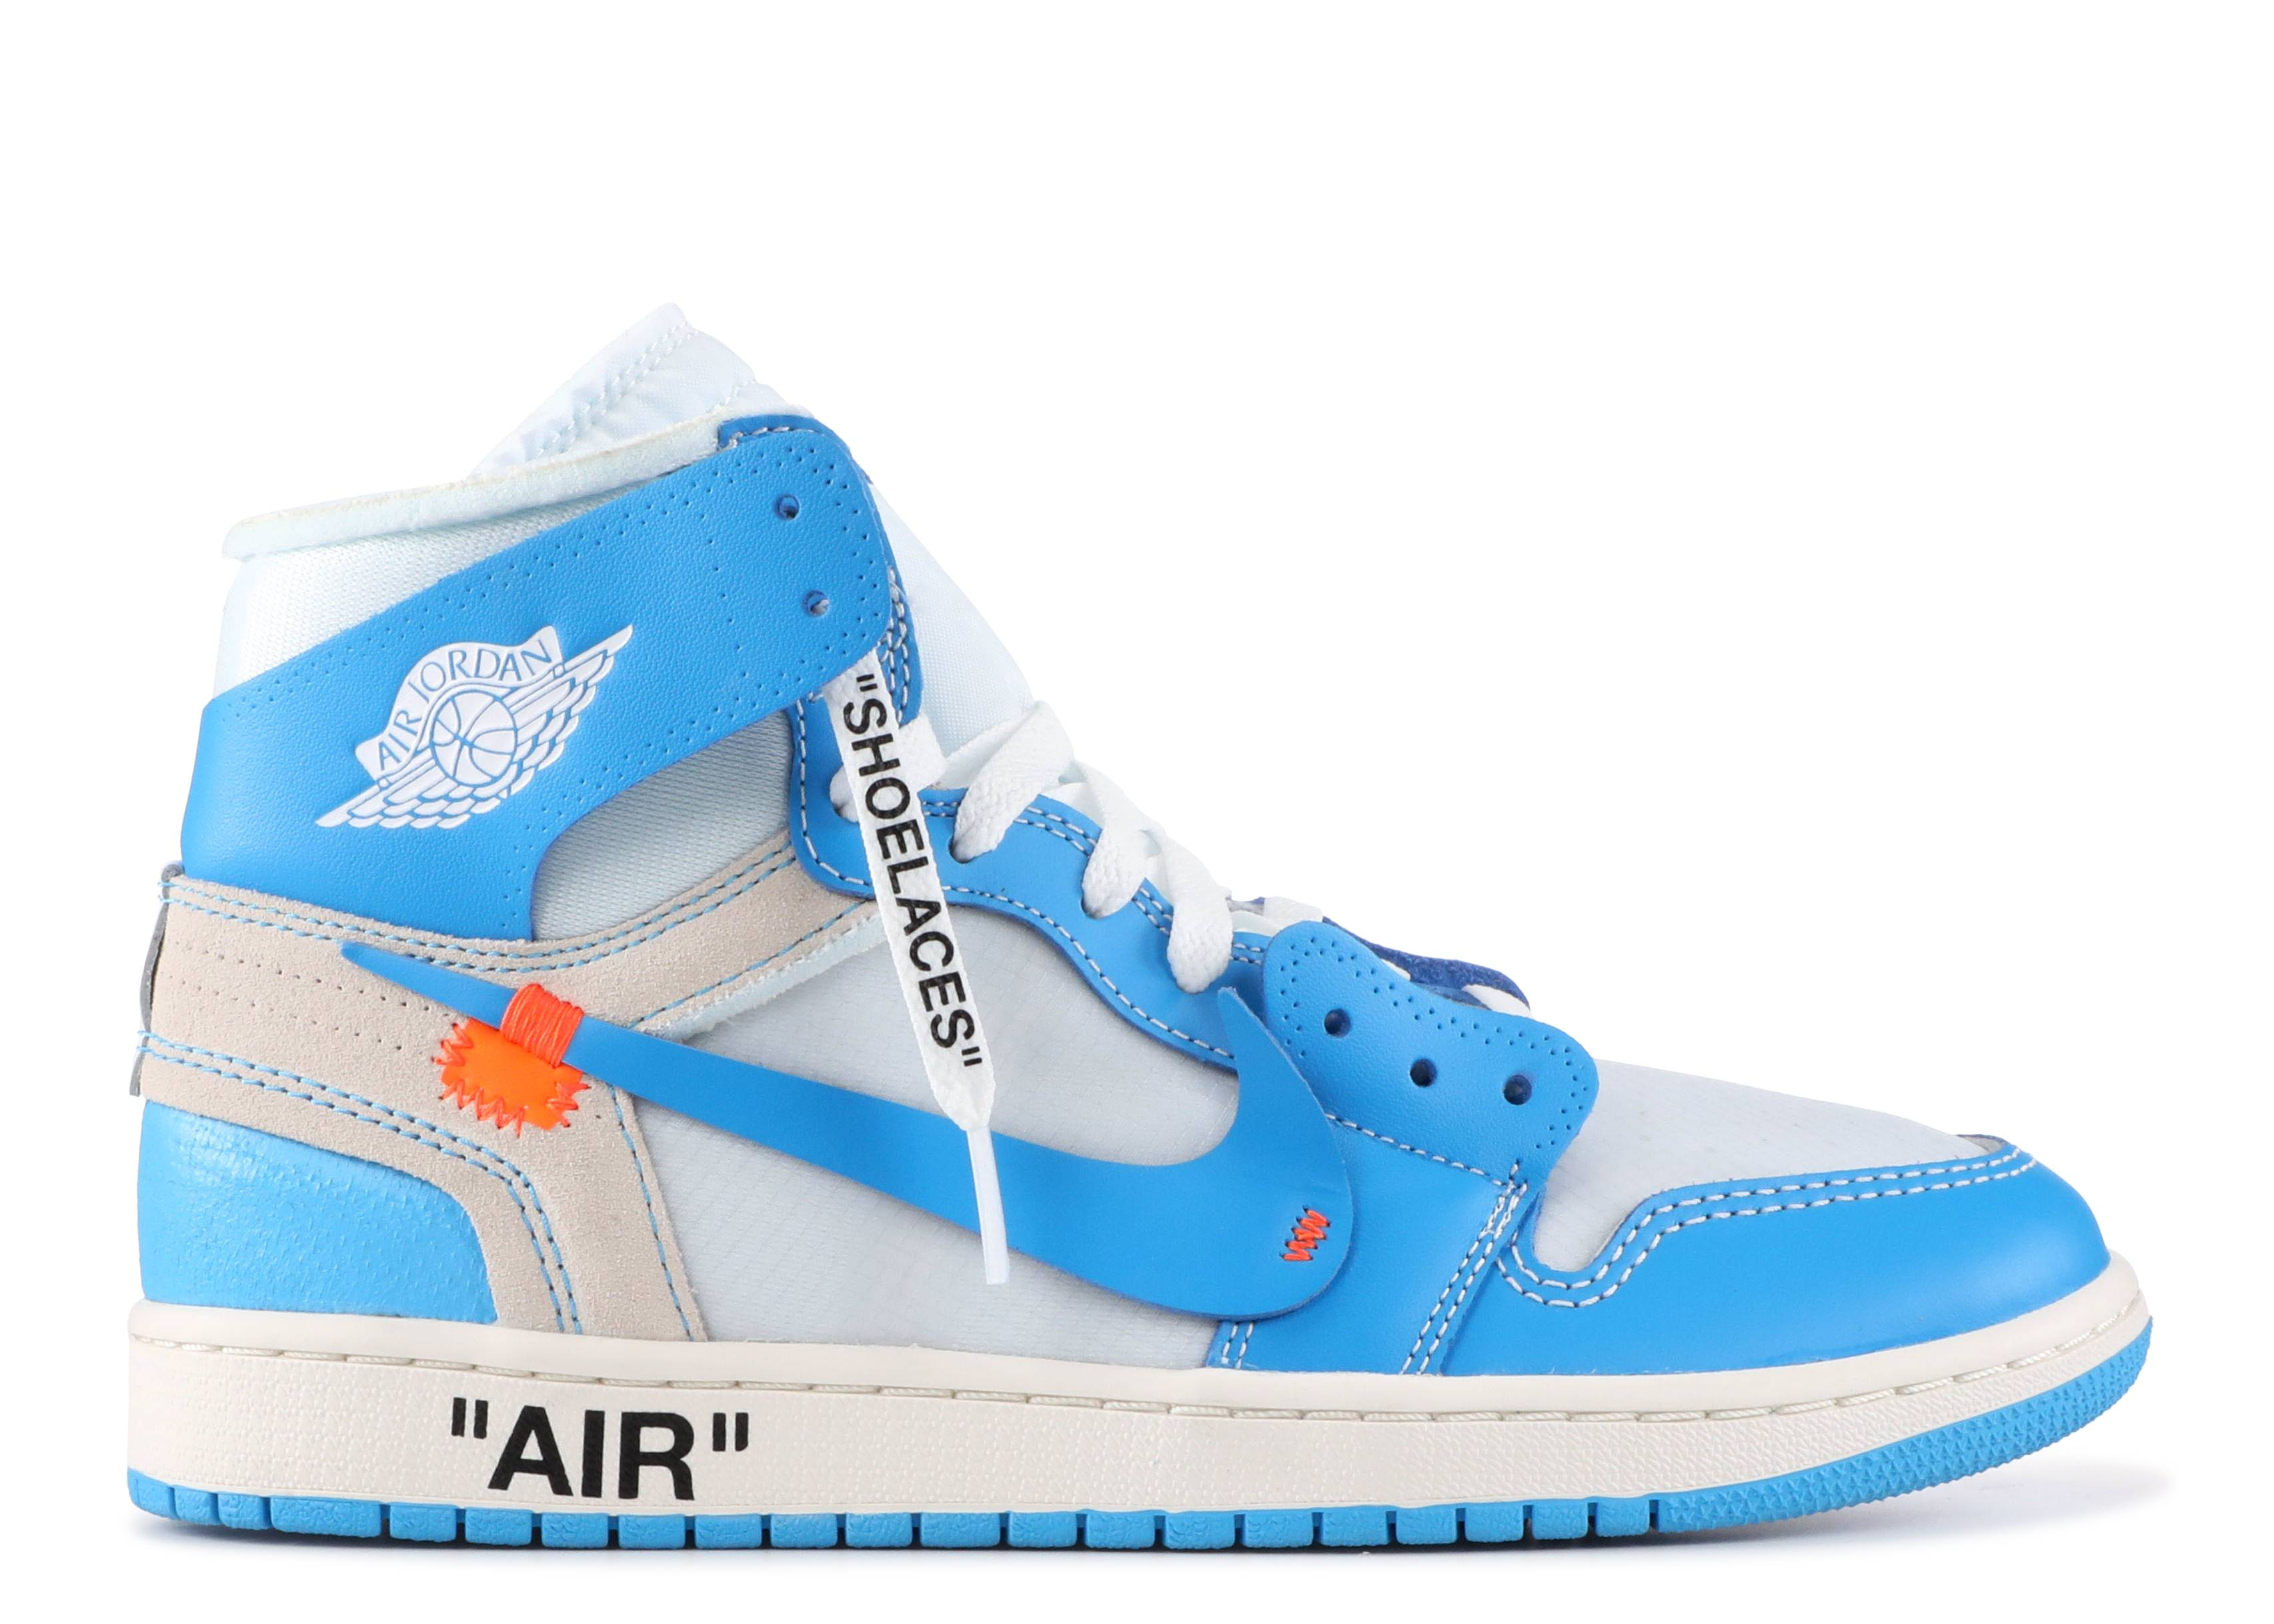 factory outlets new high quality the best Air Jordan 1 X Off-white Nrg